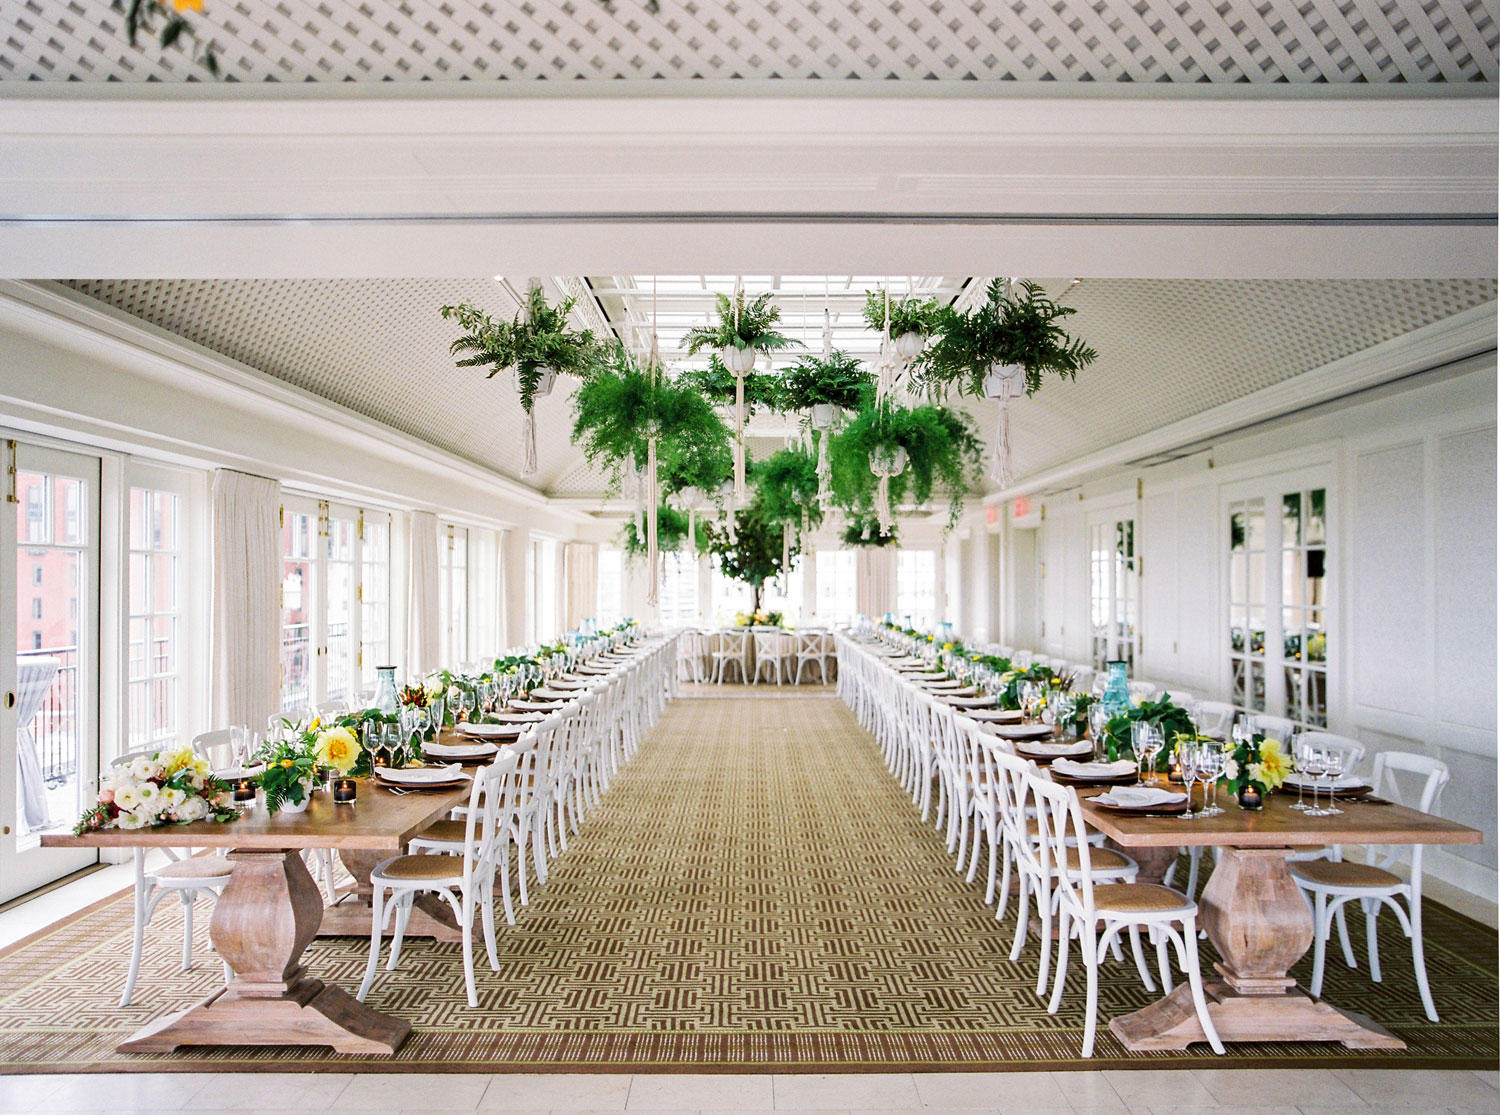 Two long king's table wedding reception